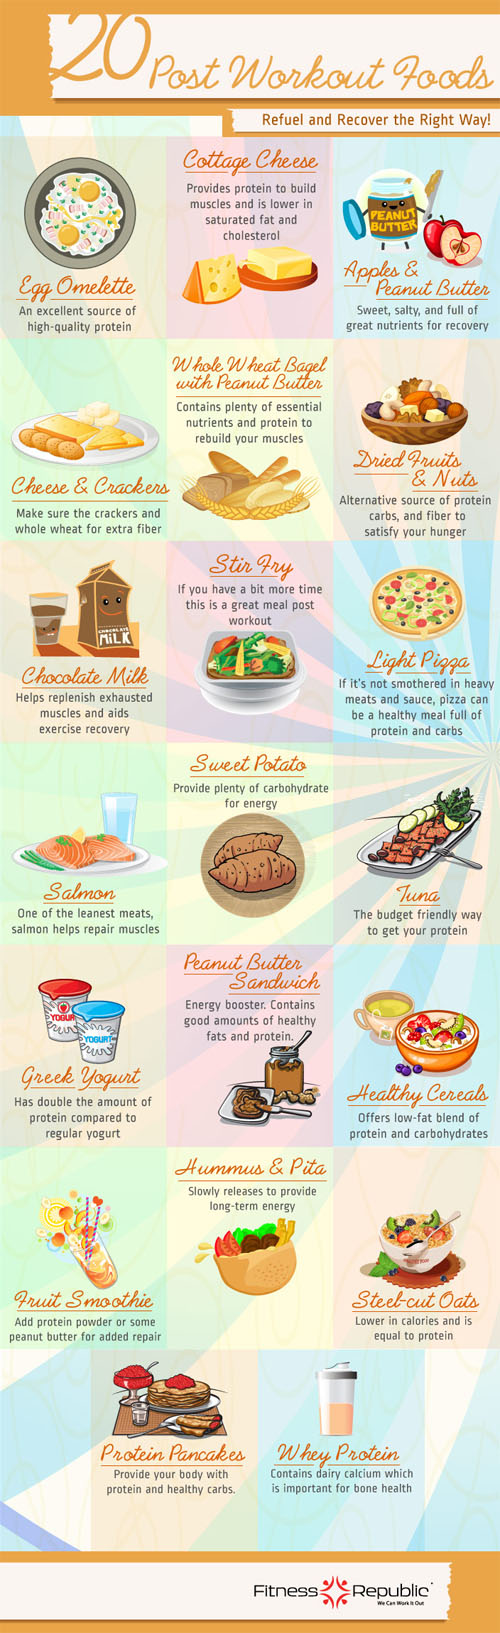 20 post workout foods